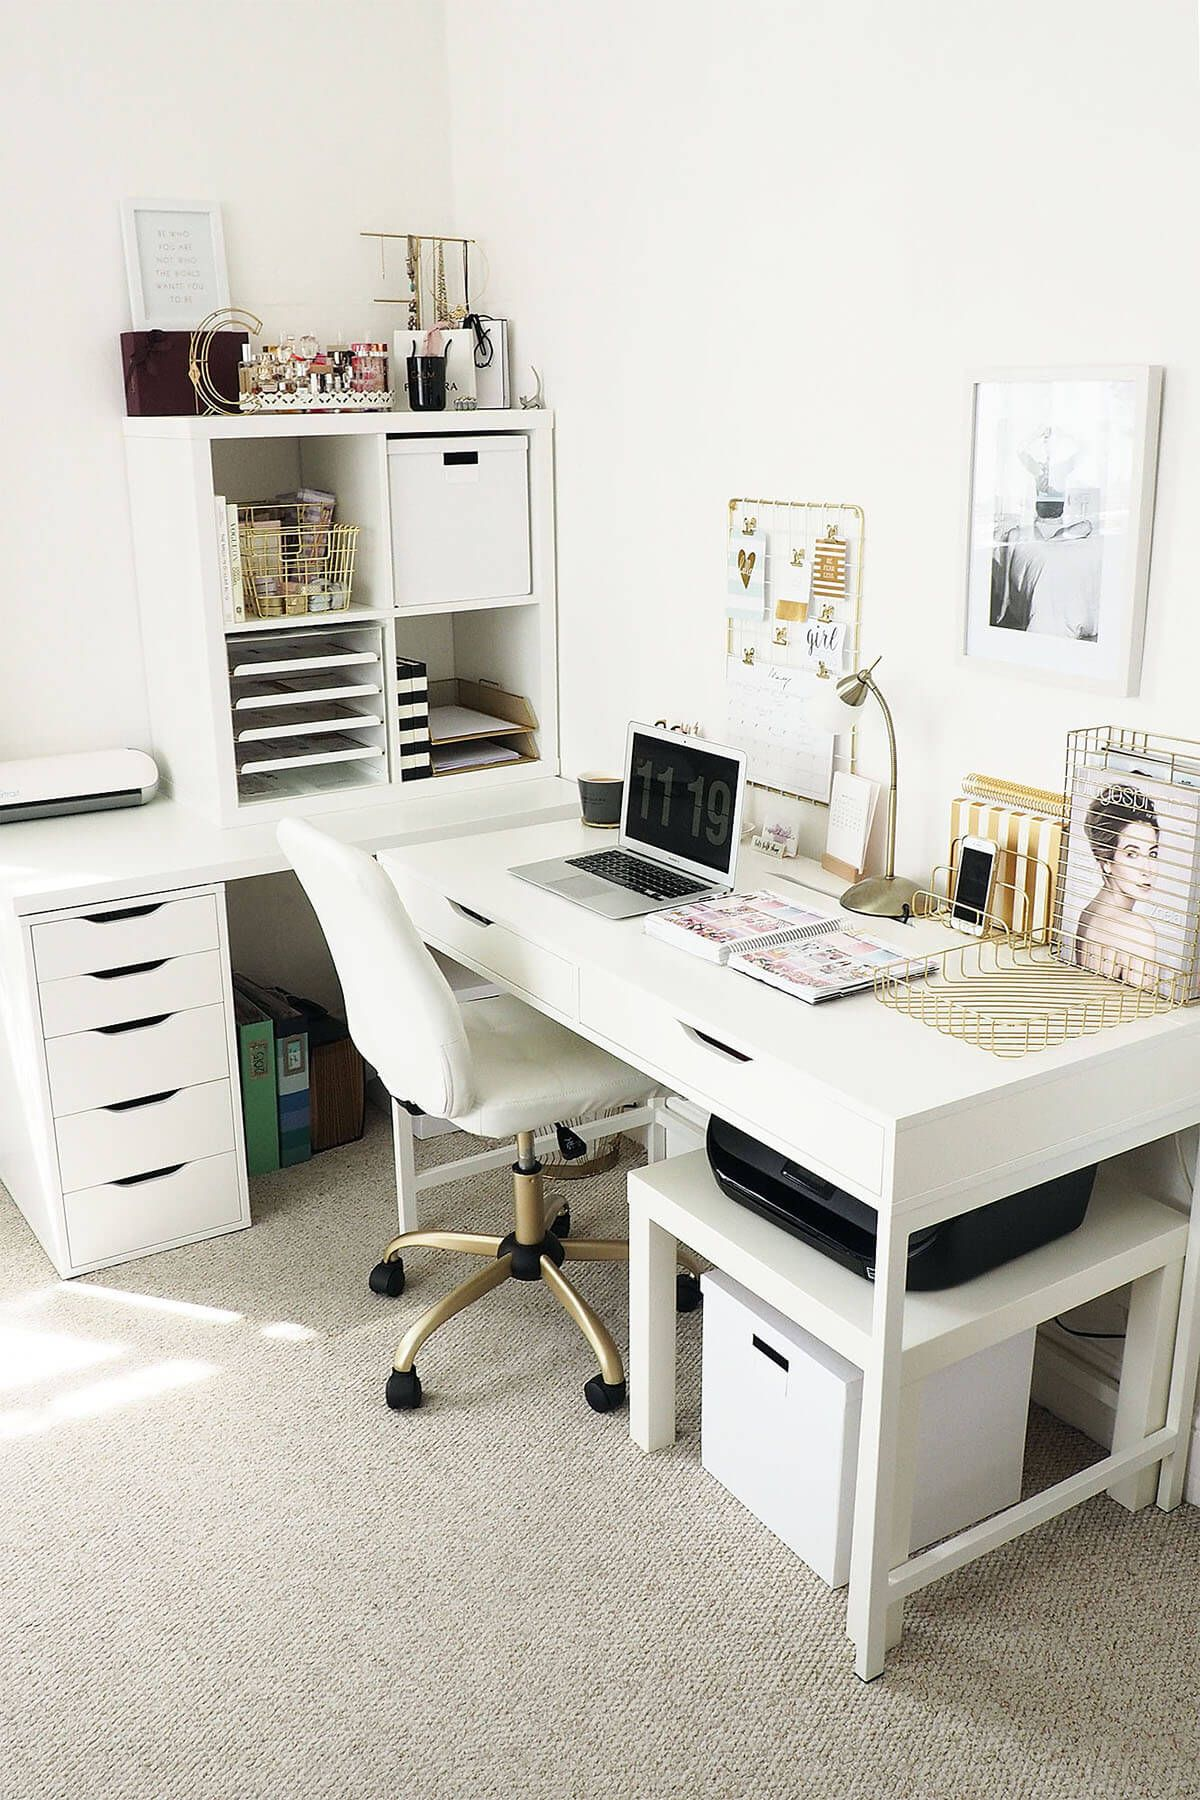 Ideas To Keep Your Home Office Organized - Design For All Home